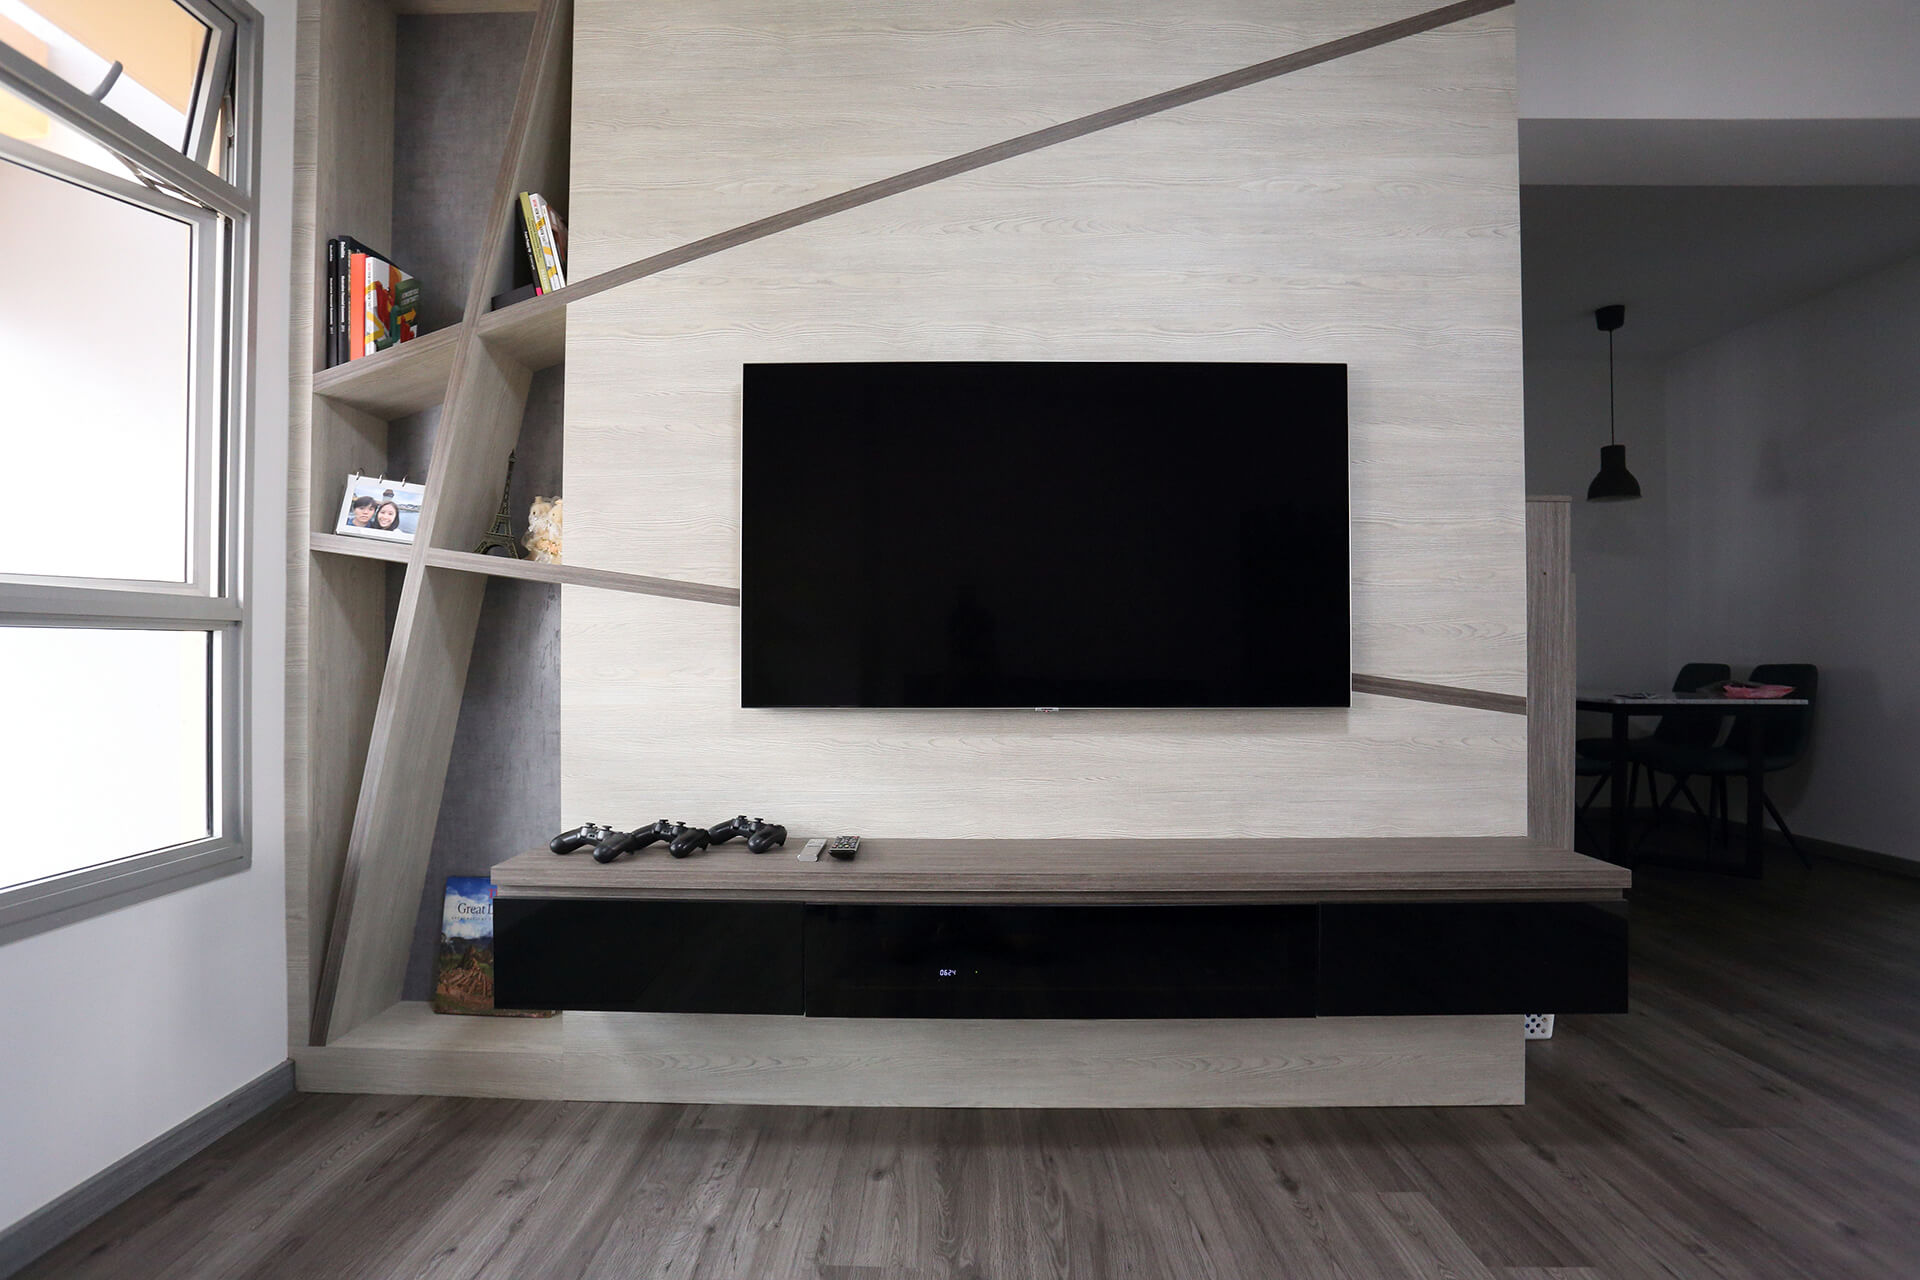 Minimalist Home Interior Design Singapore TV Console Full